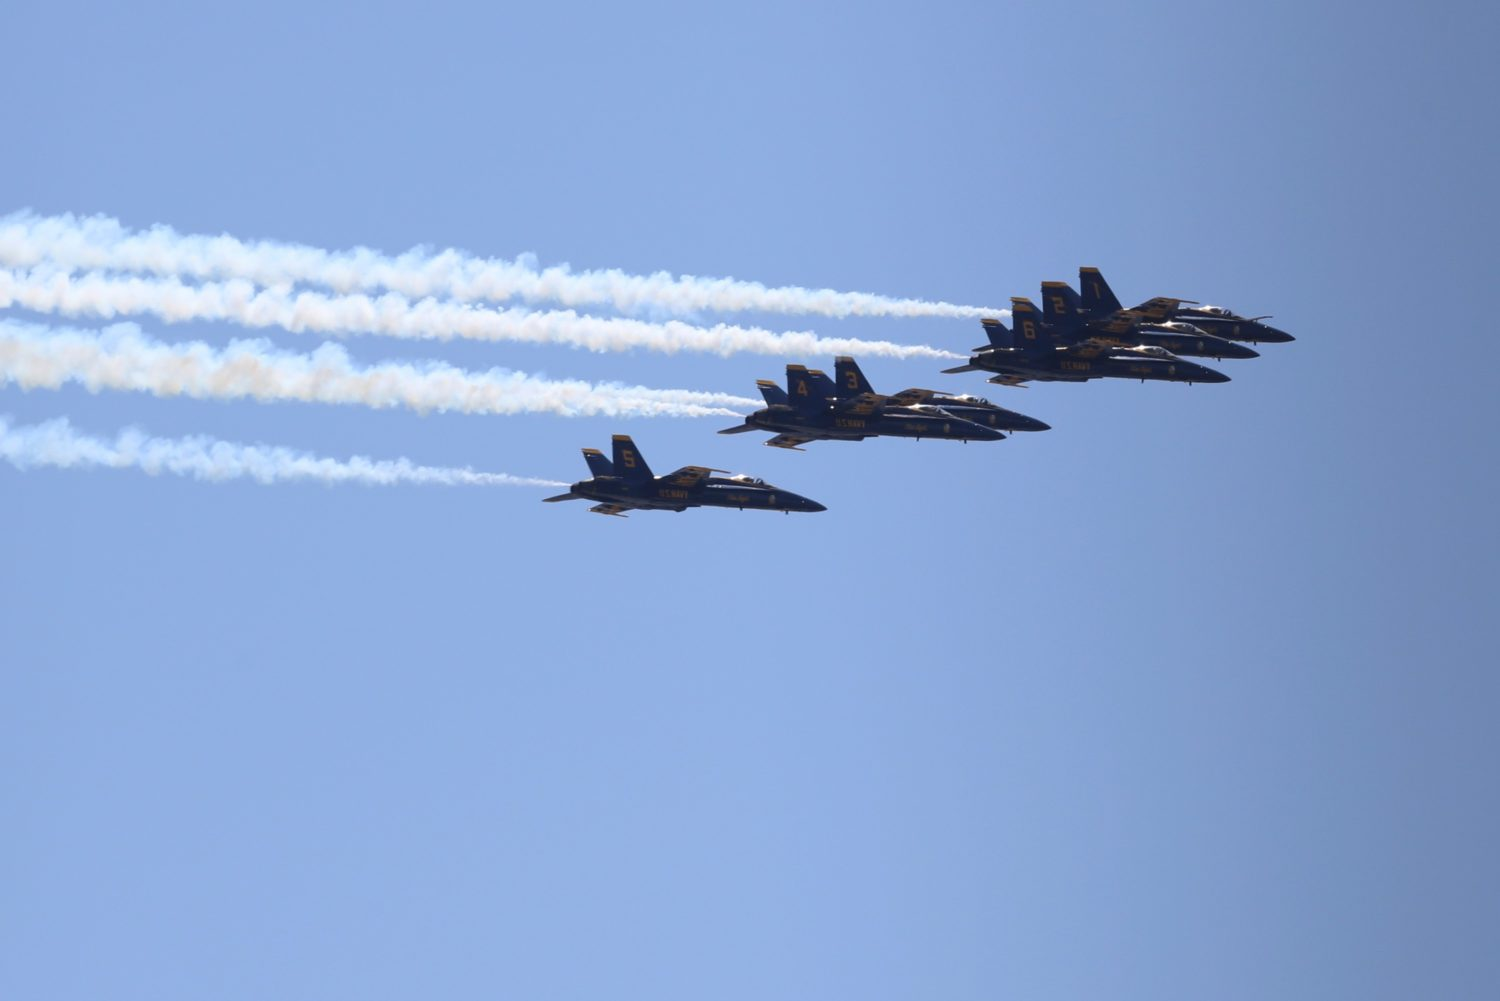 Blue Angels Thunderbirds To Fly Over D C In Honor Of Health Care